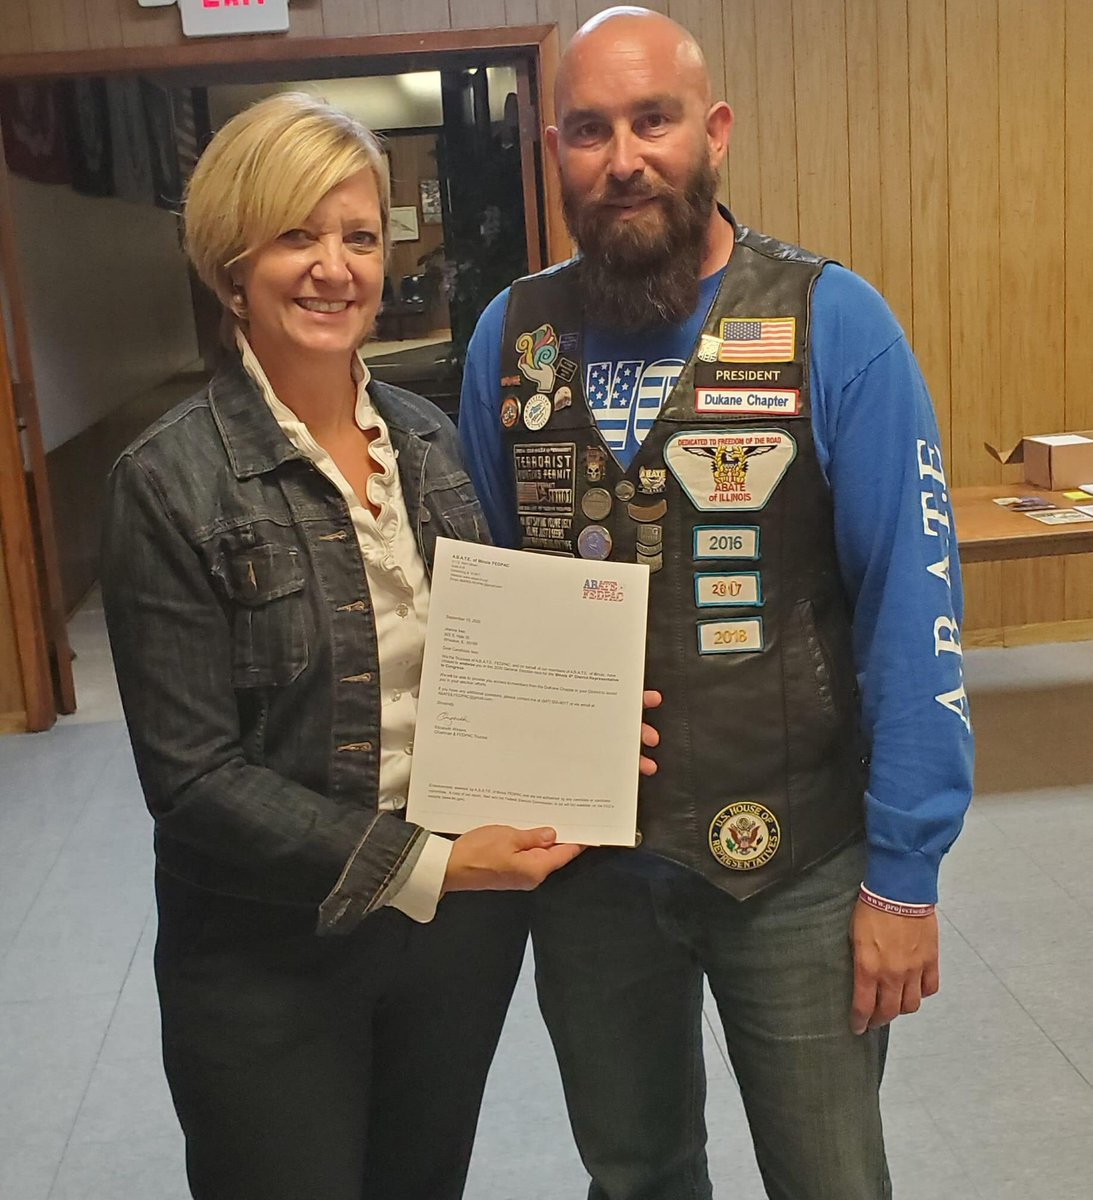 I was pleased to present @JeanneIves with her A.B.A.T.E. of Illinois endorsement letter and campaign donation last night at the @dukaneabate membership meeting. Jeanne is endorsed by A.B.A.T.E. of Illinois in the United States Congressional Race in #IL06. #twill #Vote2020 🇺🇸 https://t.co/iqtvTMoonu